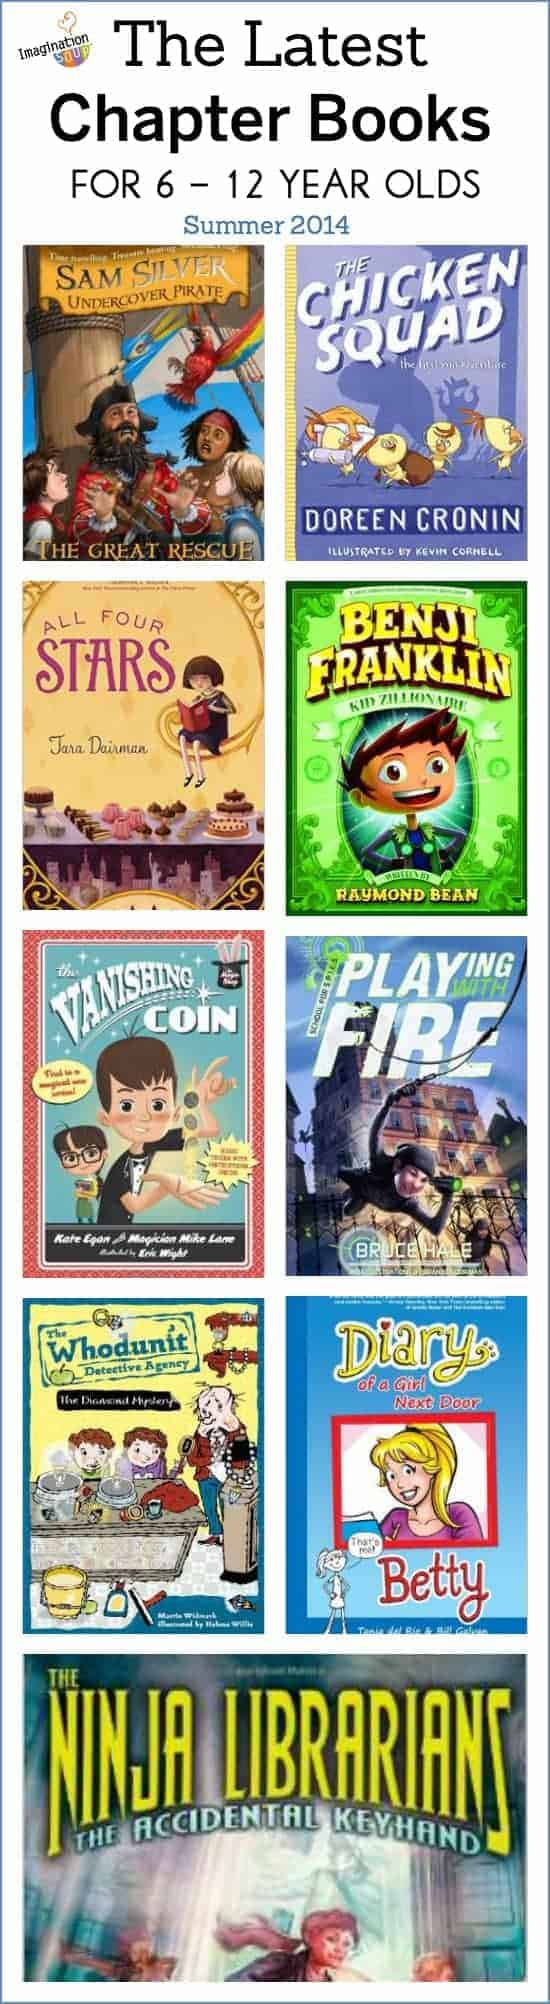 the latest middle grade chapter books for 6 to 12 year olds